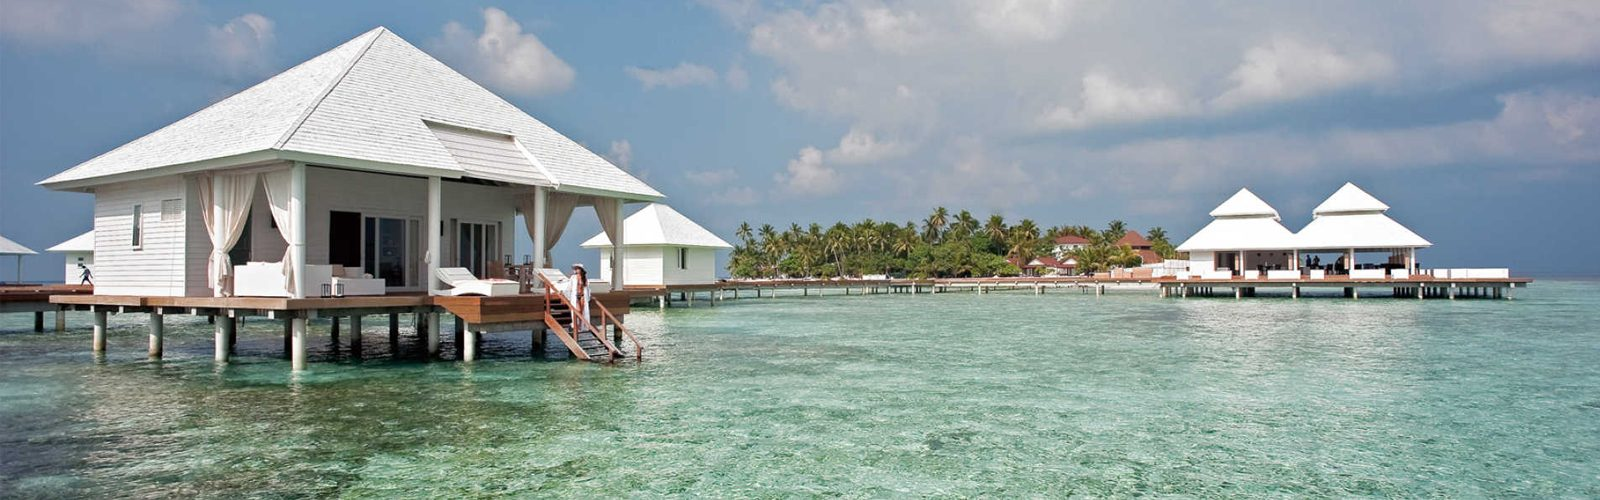 Kuoni Exclusive Hotels Luxury Kuoni Holiday Packages Header